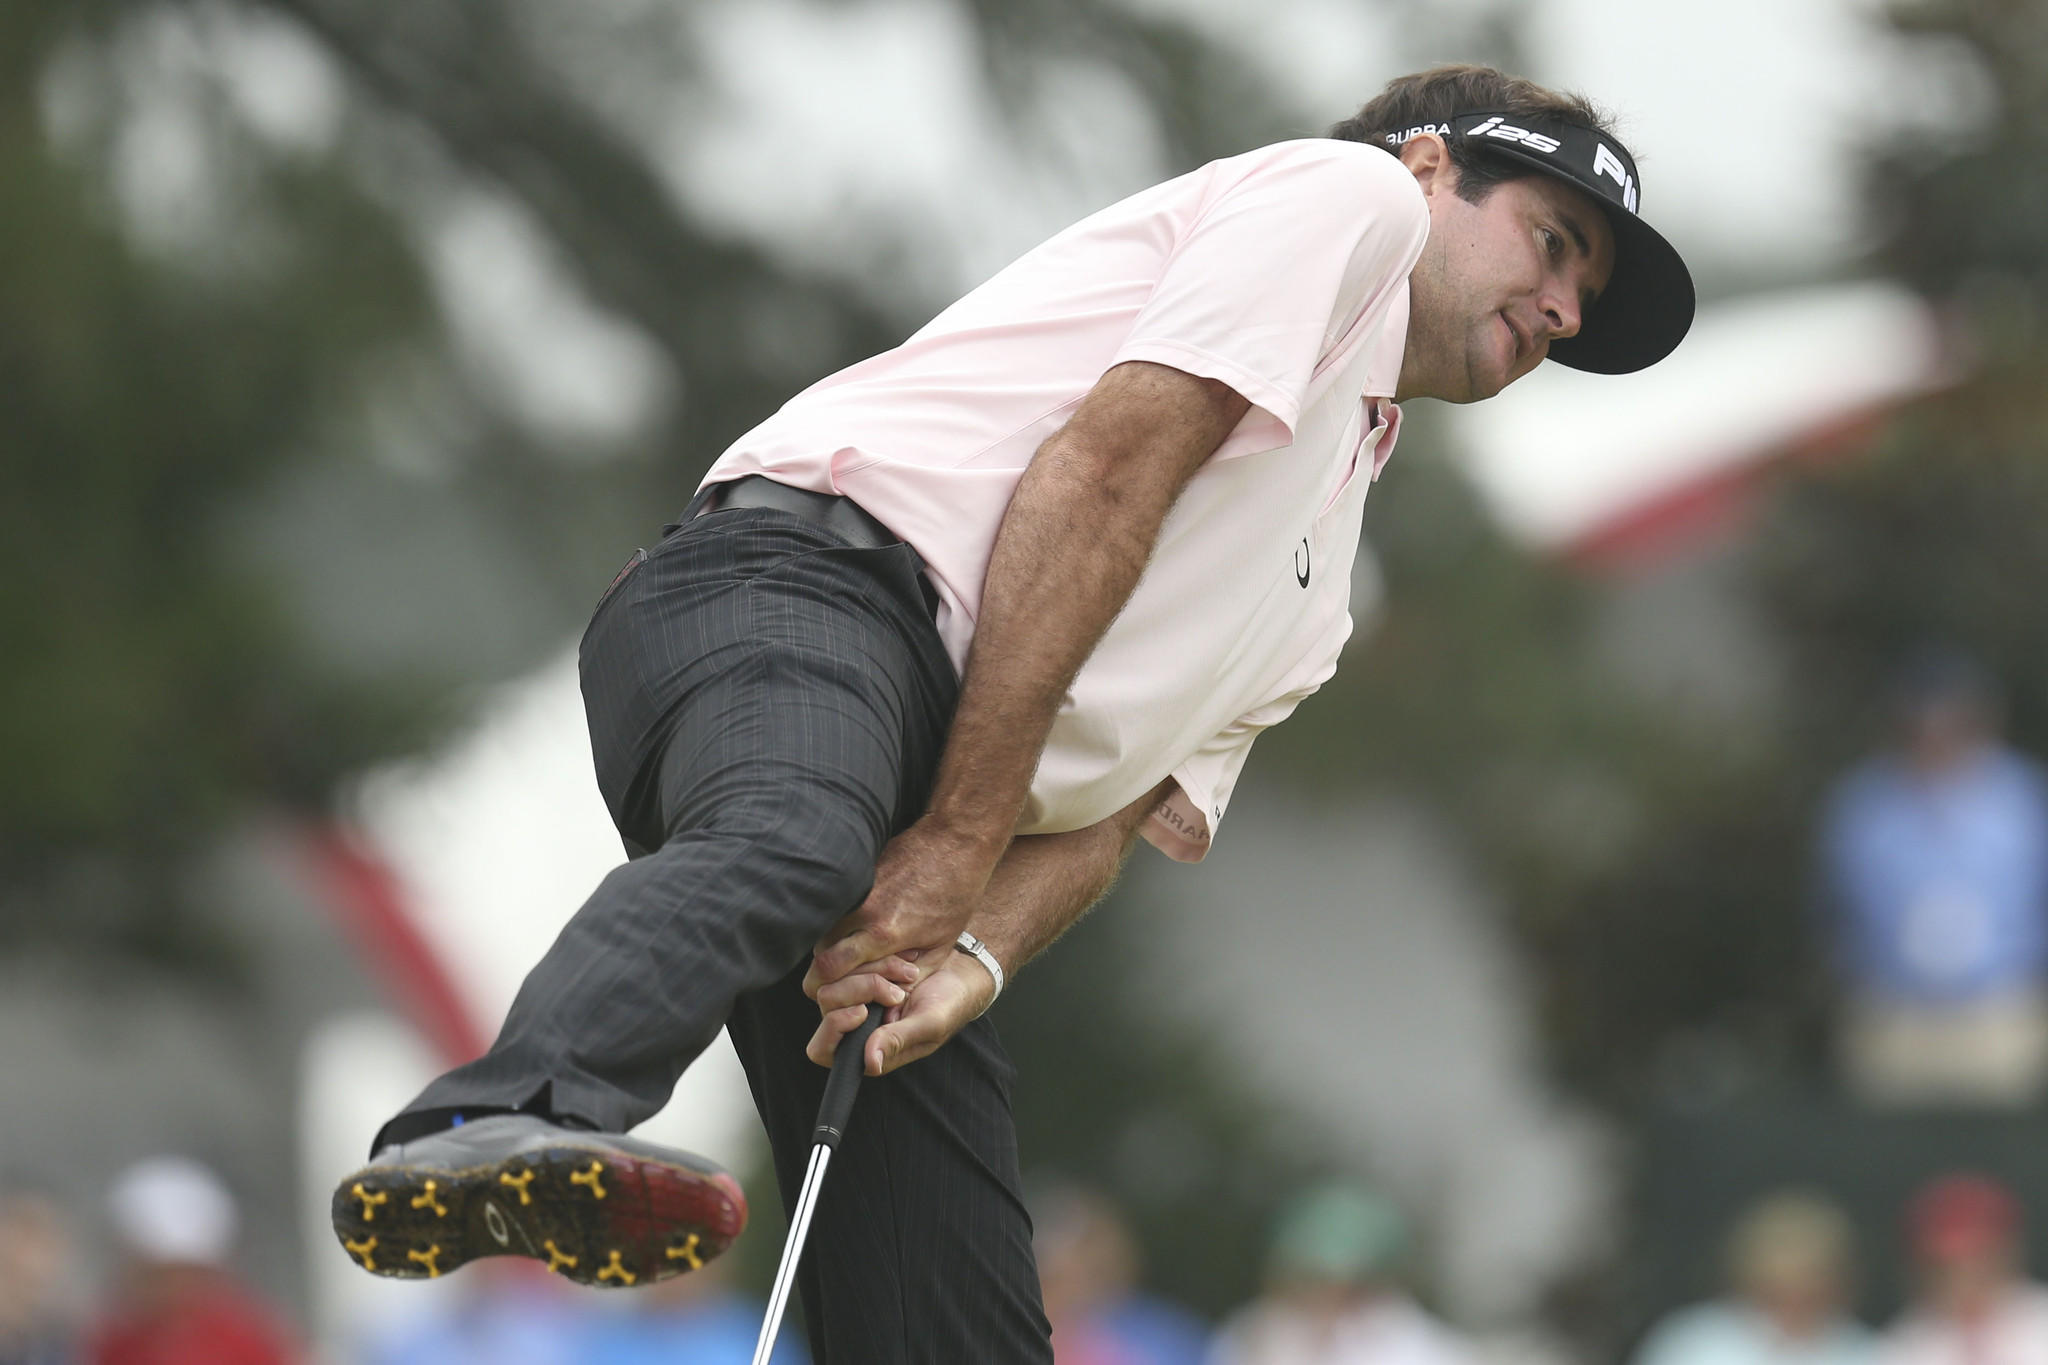 Jun 13, 2014; Pinehurst, NC, USA; Bubba Watson reacts after his putt on the 13th green during the second round of the 2014 U.S. Open golf tournament at Pinehurst Resort Country Club - #2 Course. Mandatory Credit: Jason Getz-USA TODAY Sports ORG XMIT: USATSI-143060